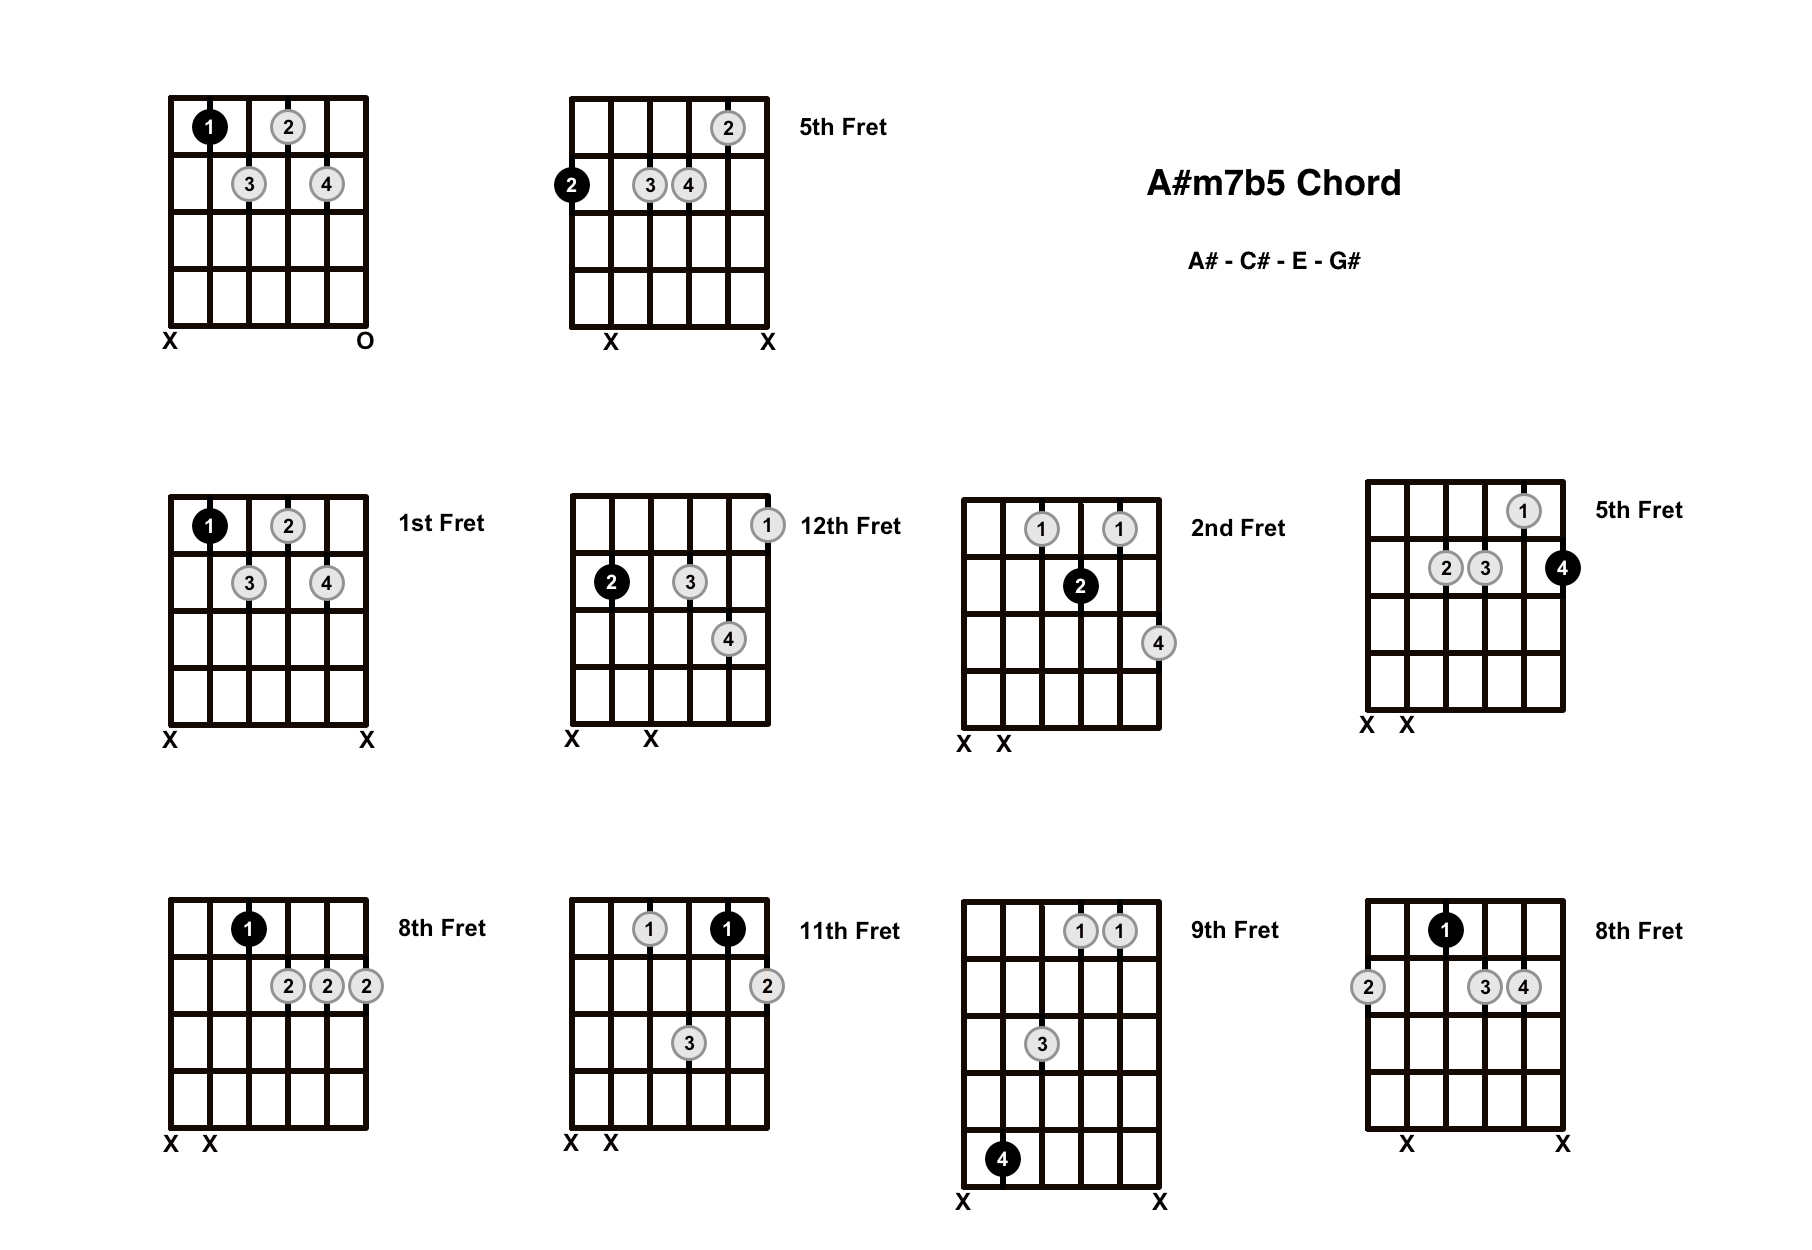 A#m7b5 Chord On The Guitar (A Sharp Minor 7 Flat 5, A Sharp Half Diminished) – Diagrams, Finger Positions and Theory